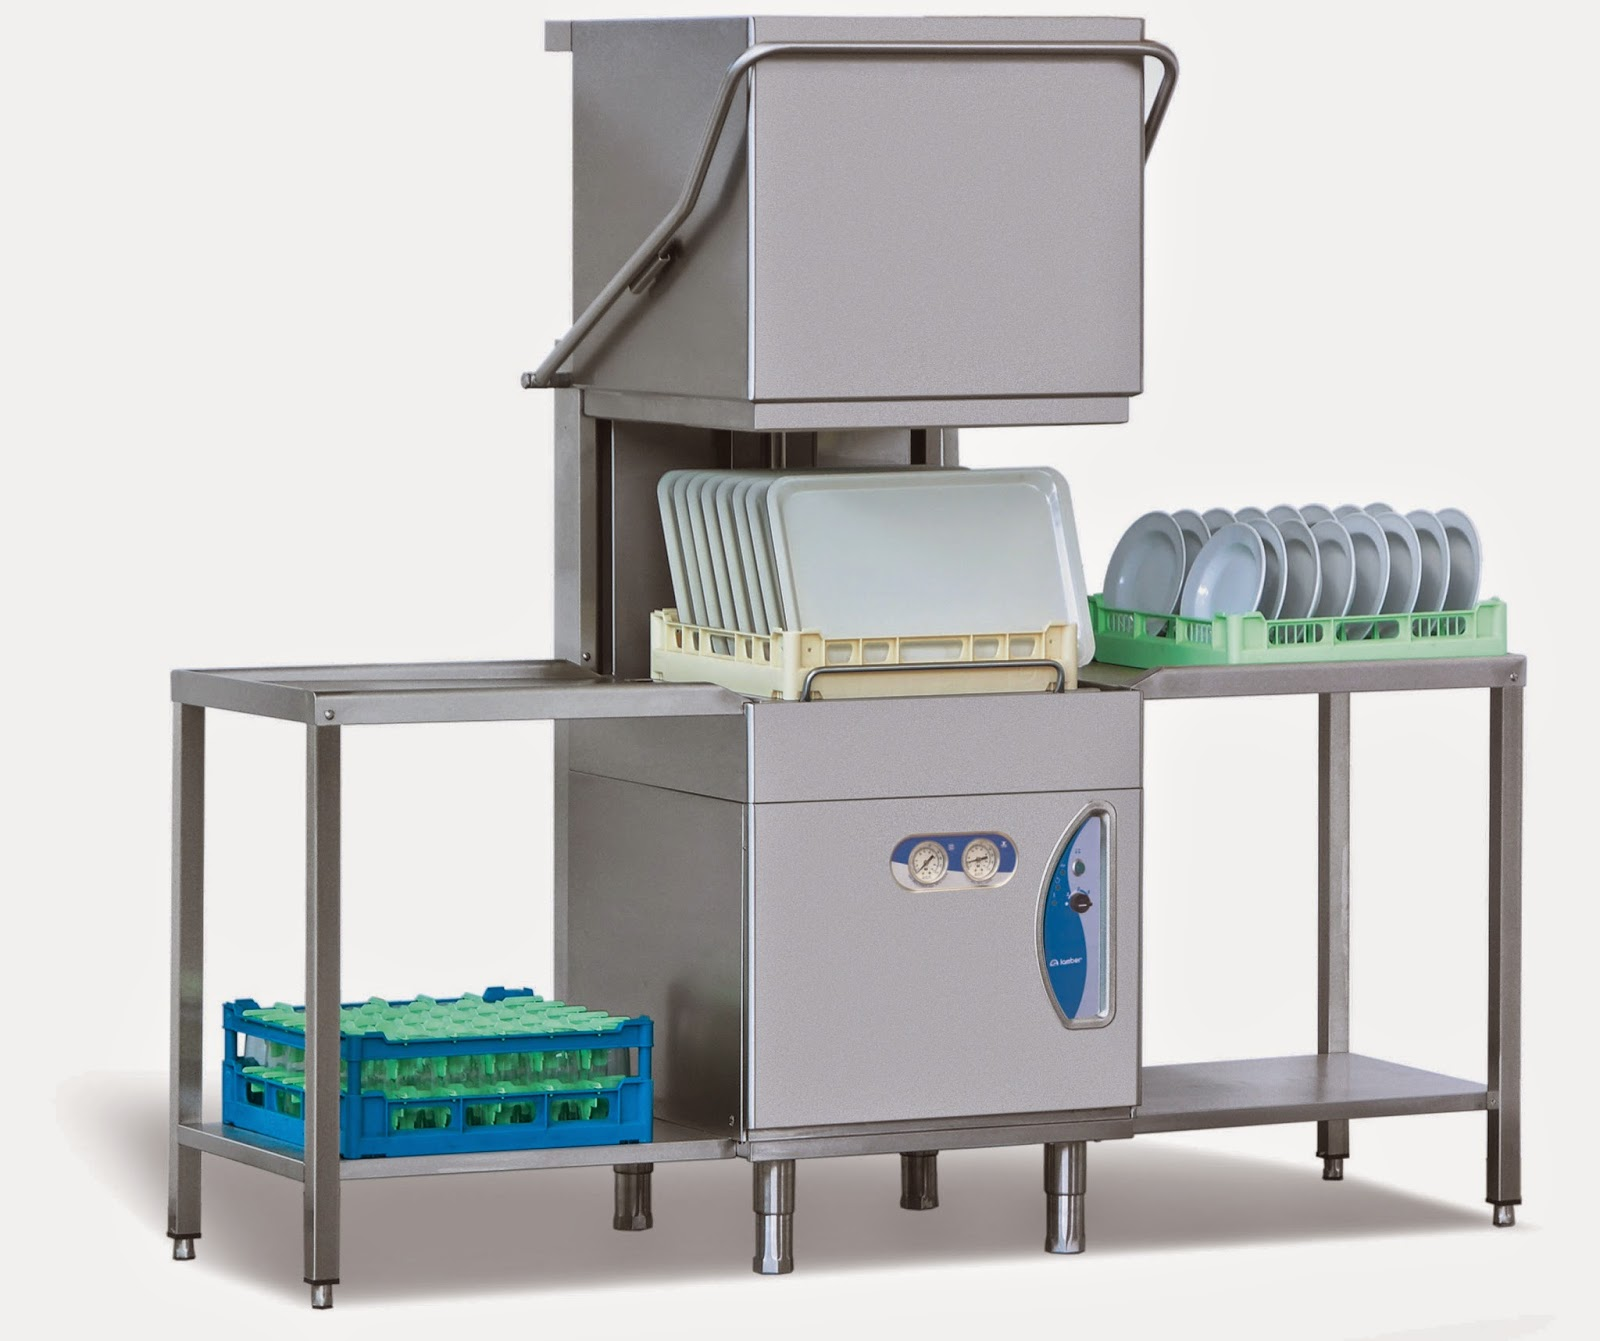 Commercial Dishwashers for Restaurants